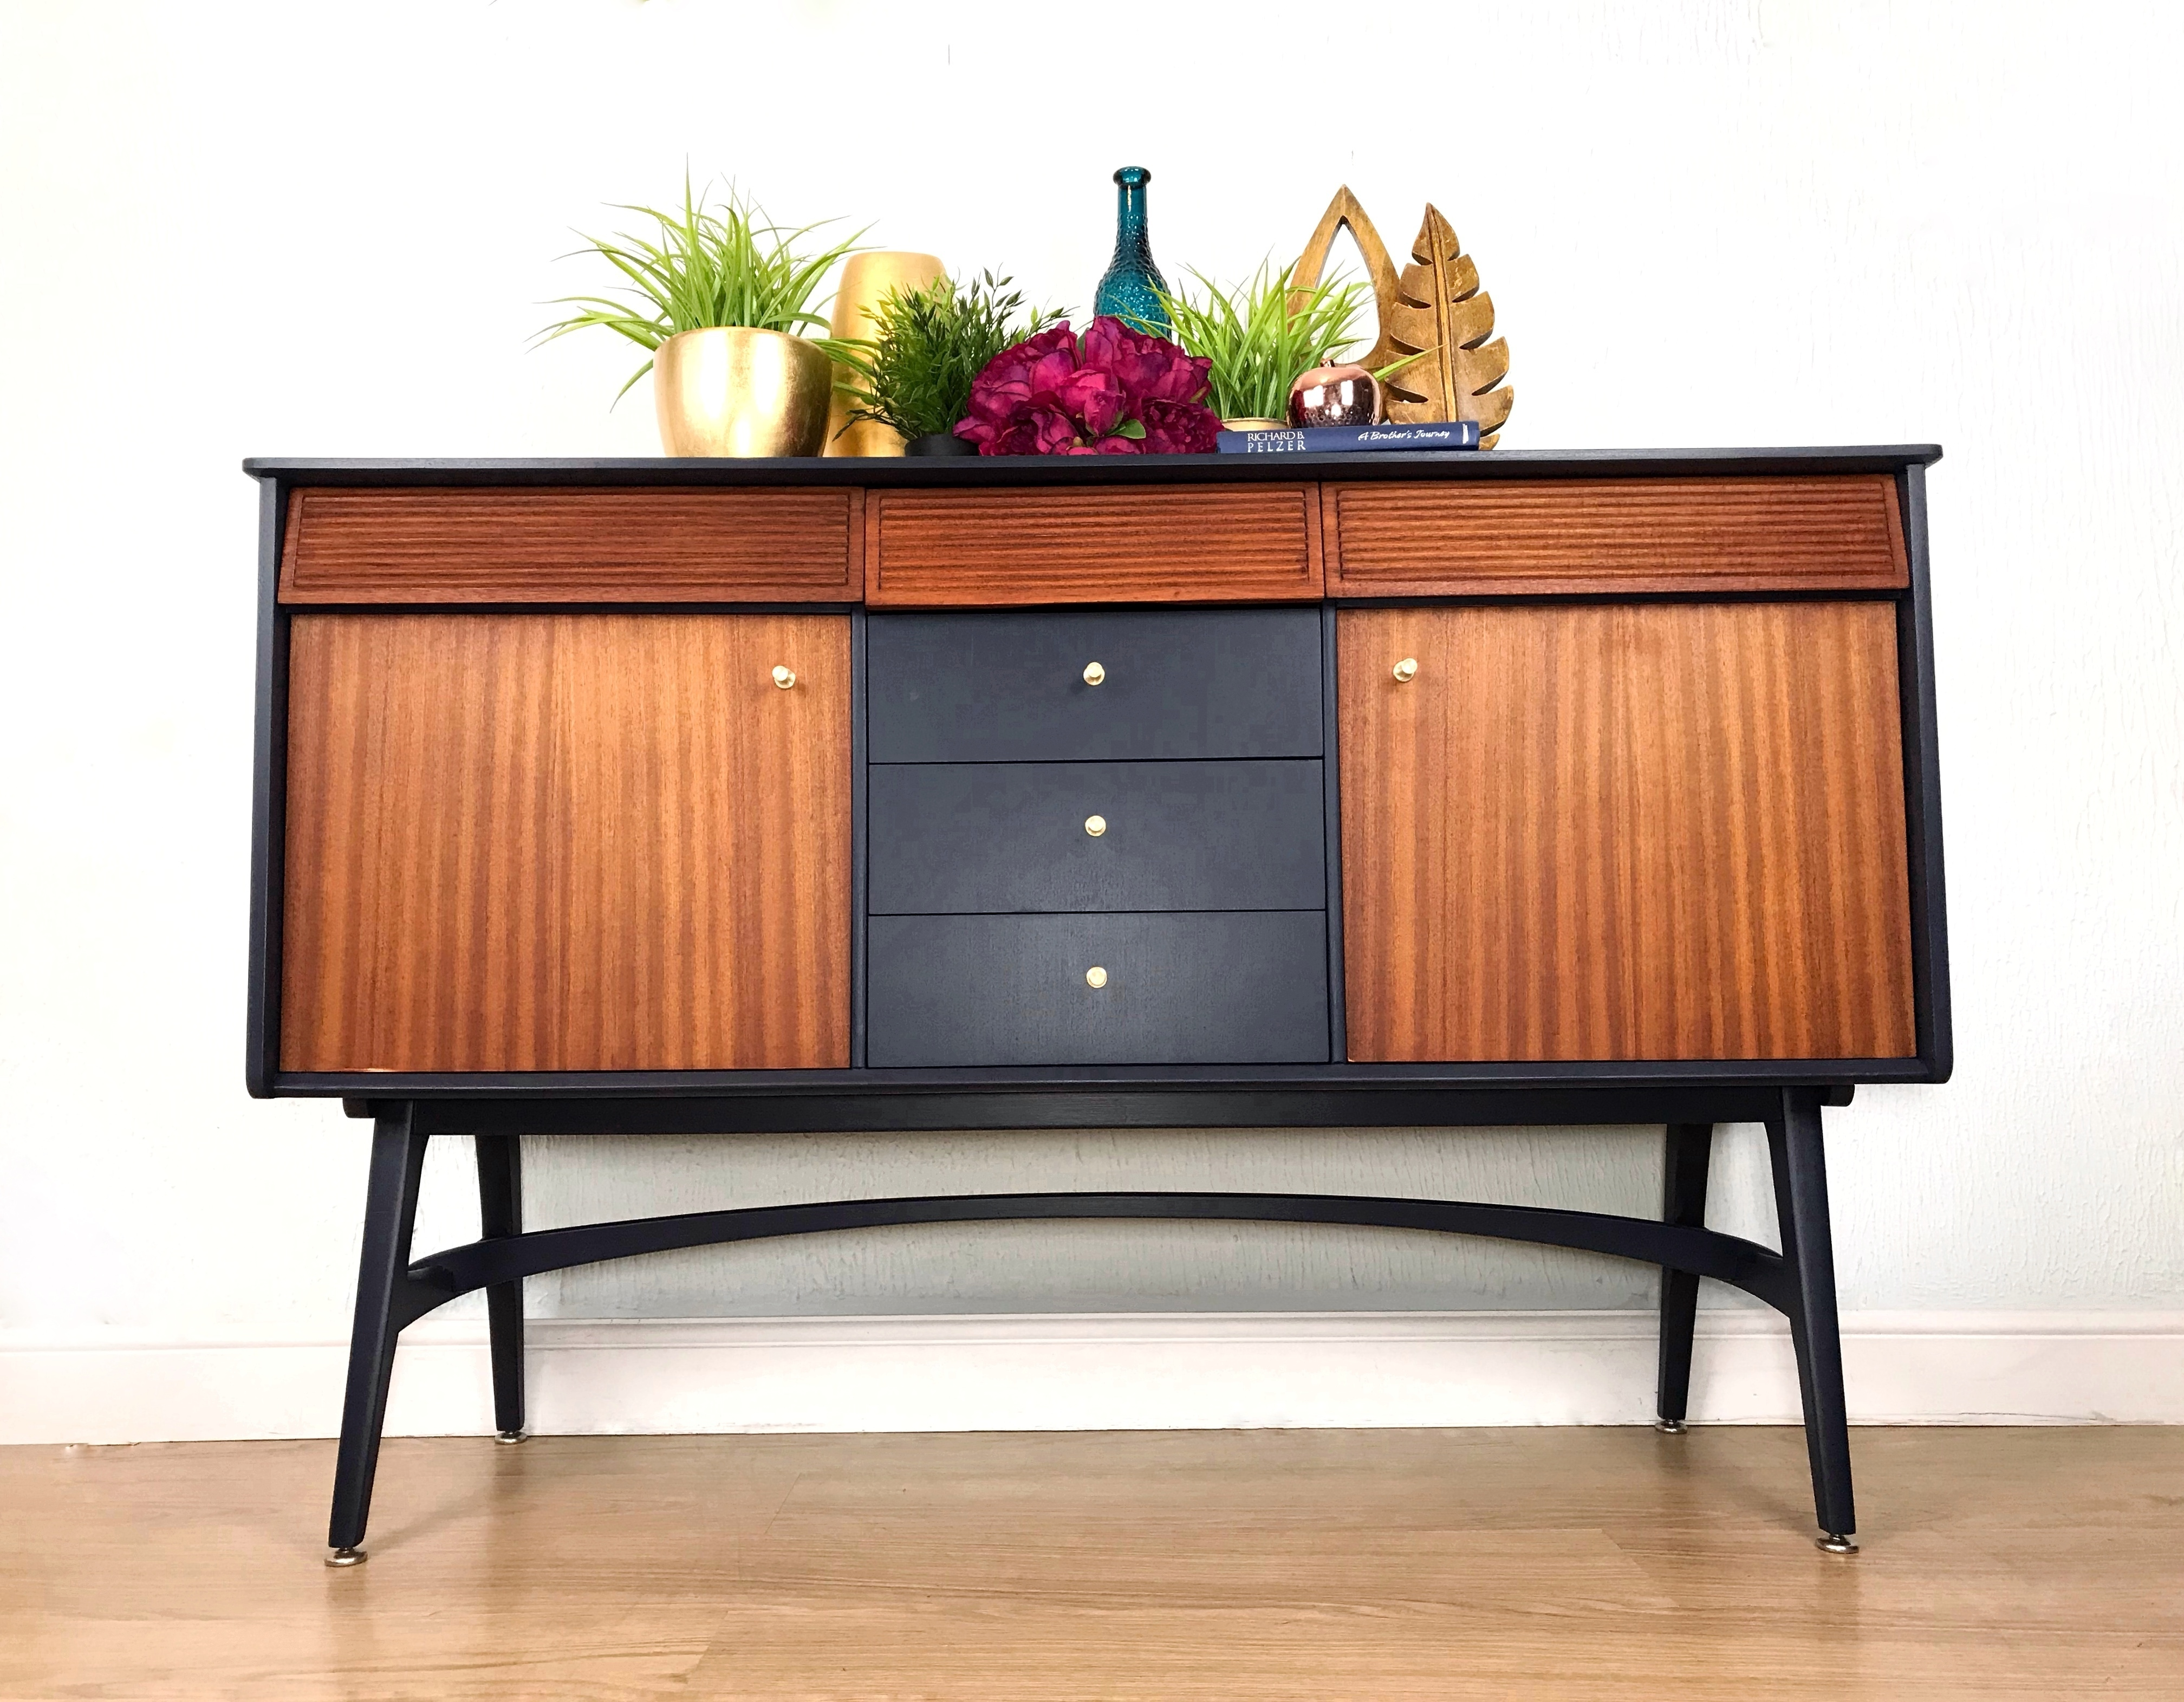 Vintage Nathan Sideboard Mid Century Vintage Retro Refurbished Nathan Sideboard On Stylish Legs Nathan Vinterior Co